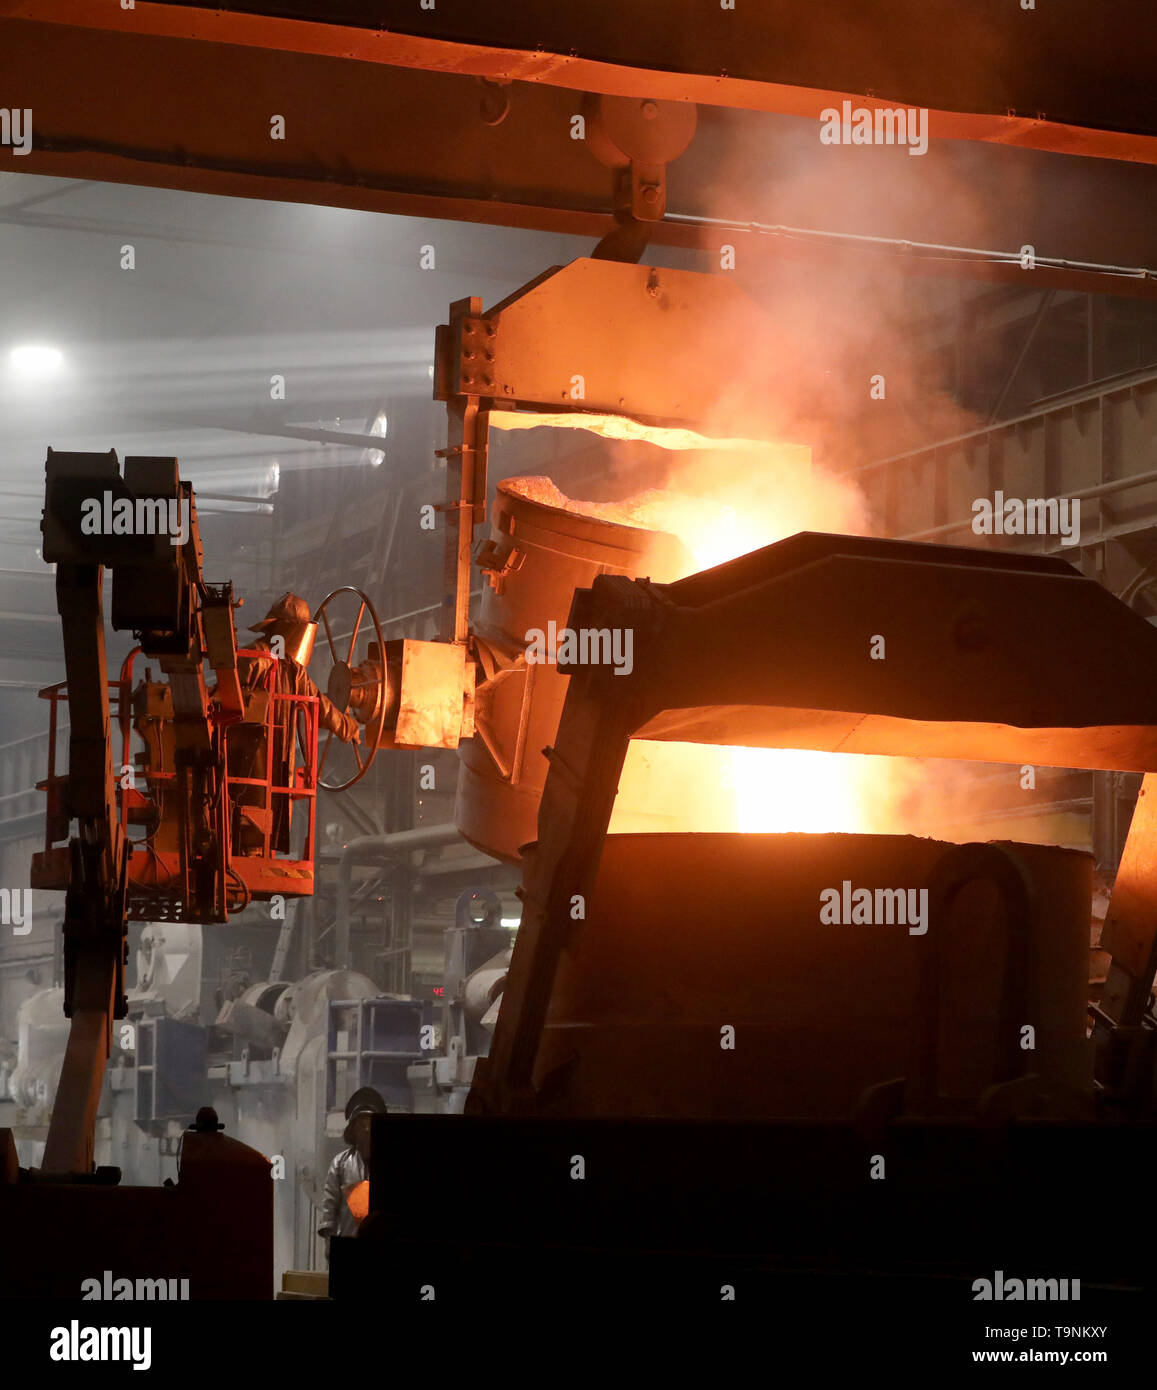 08 May 2019, Mecklenburg-Western Pomerania, Waren: In the foundry of Mecklenburger Metallguss GmbH MMG, a crane ladle is filled with 80 tons of aluminium bronze. Together with another 85 tons directly from a furnace, the approx. 1,170 degree hot material is then poured into a huge mould for a ship's propeller. The propeller for a large Korean container freighter will later have a diameter of 10.40 meters and weigh 117 tons. Less than a year after its transition to independence, MMG sees itself on the upswing again. Sales of 50 million euros are expected for 2019, about ten million euros more t - Stock Image